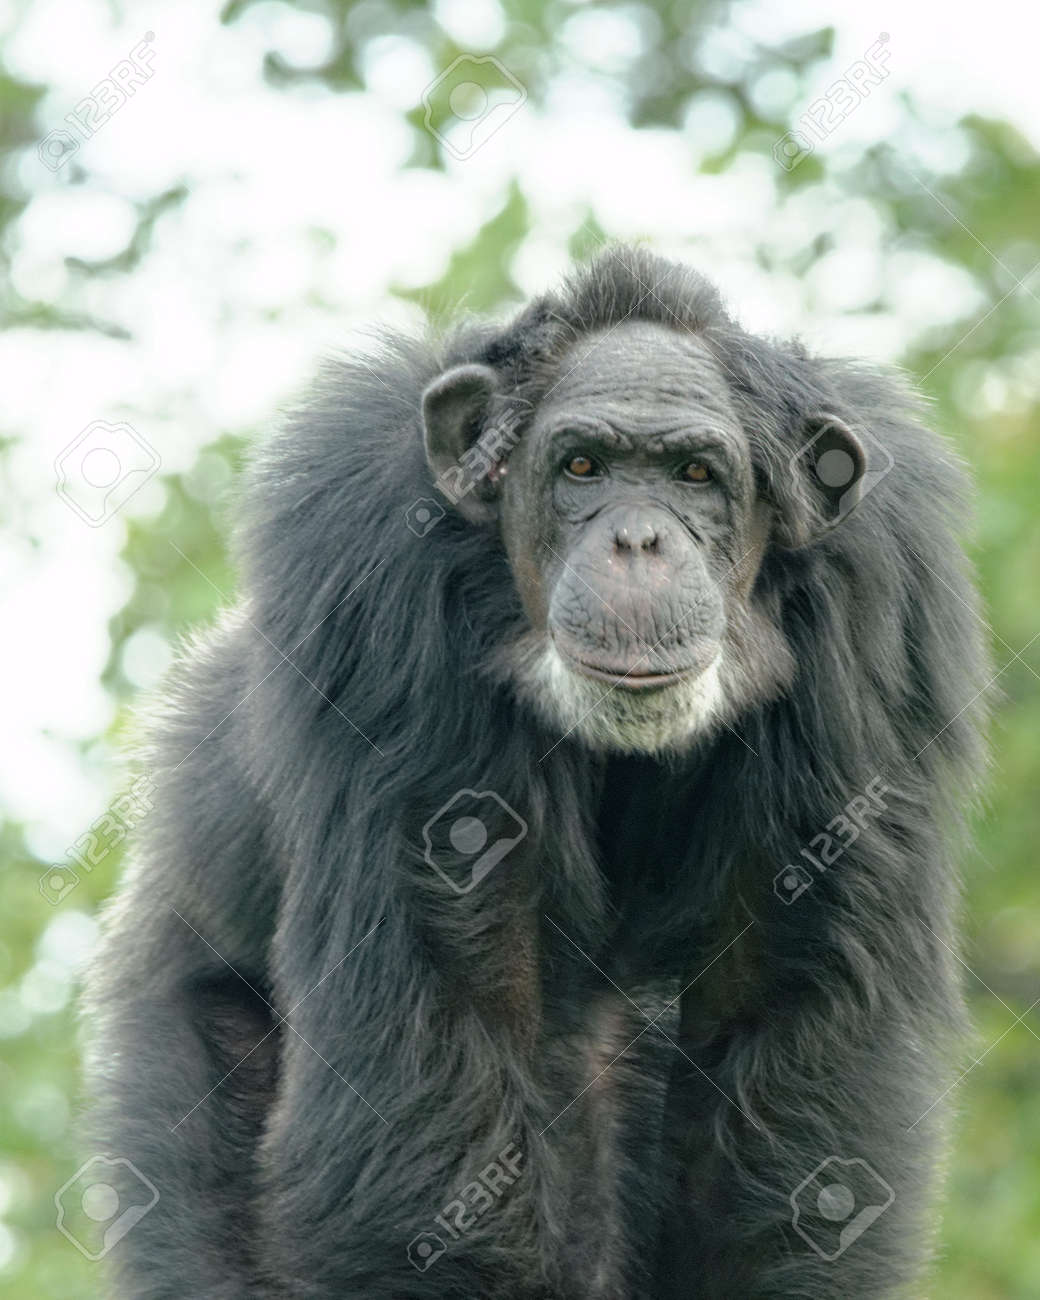 Common chimpanzee (Pan troglodytes), also known as the robust